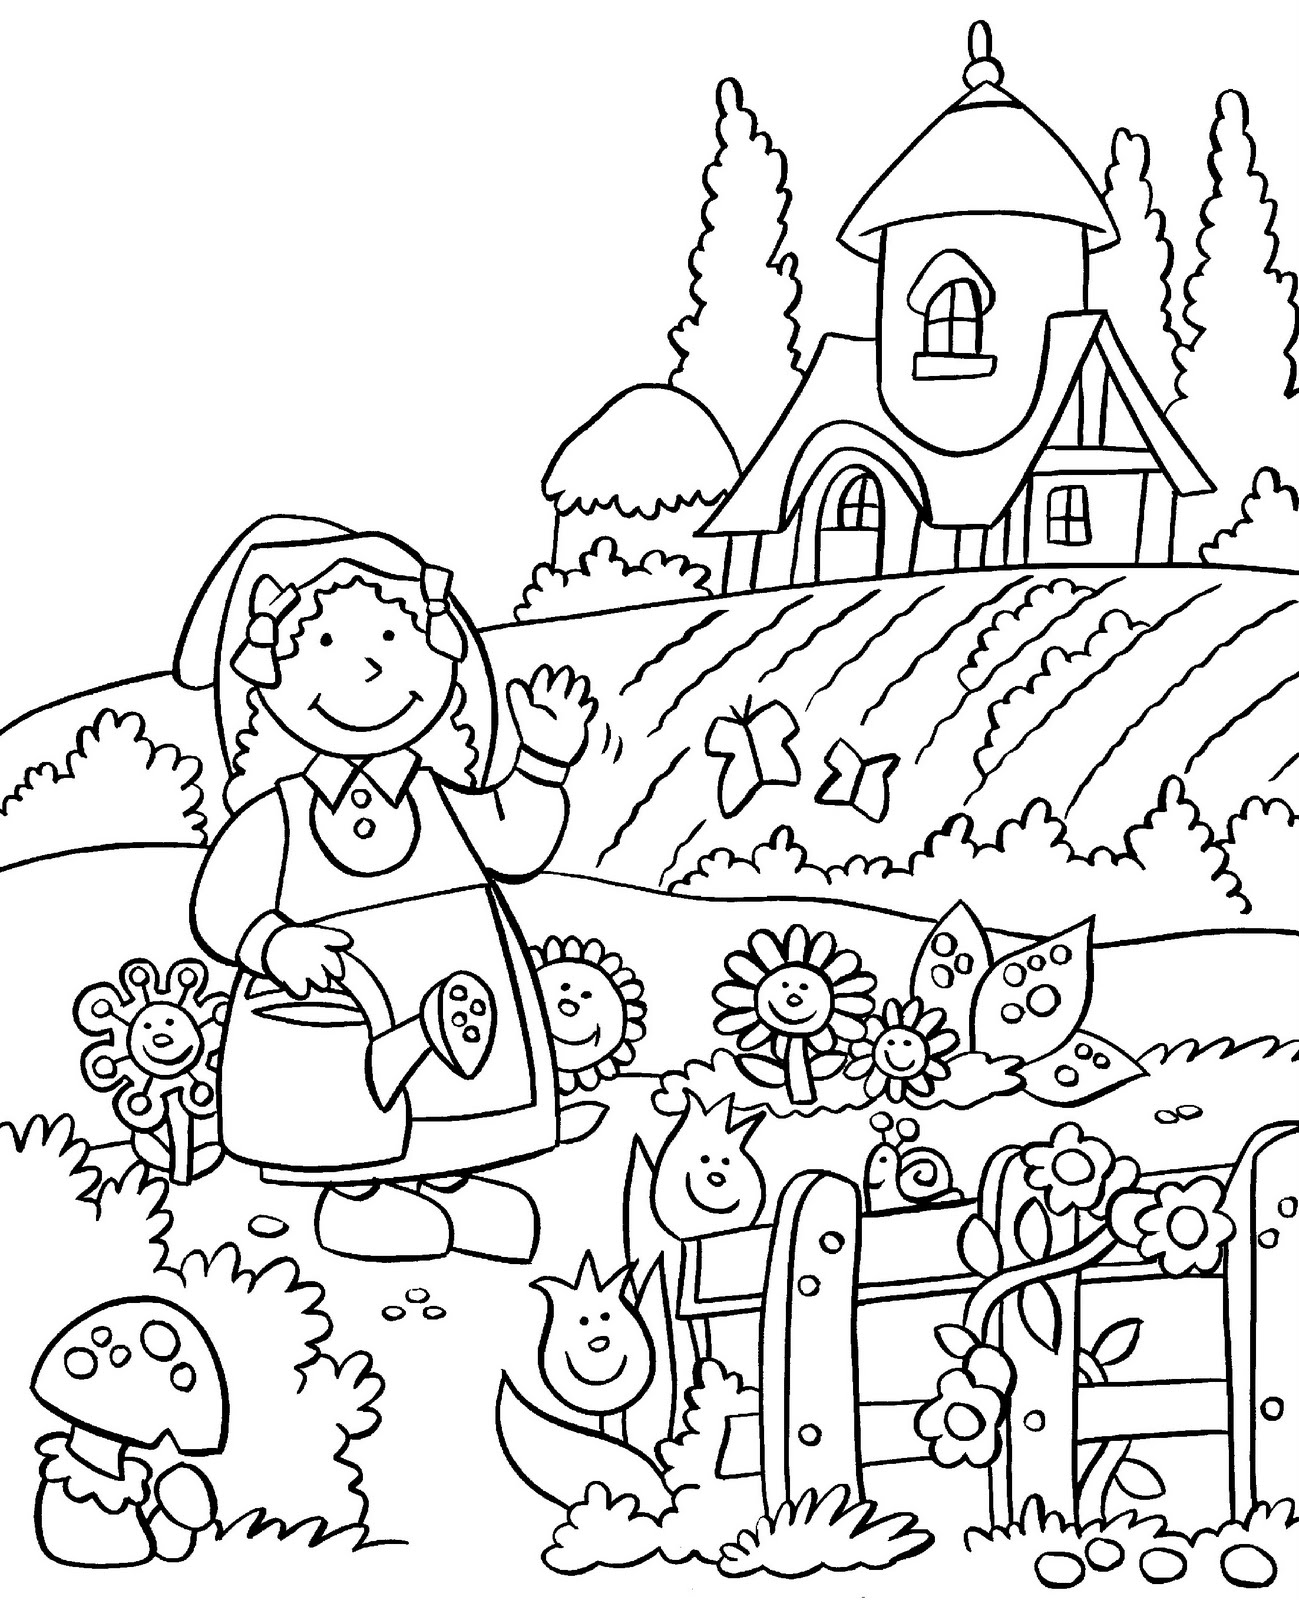 Flower garden coloring pages to download and print for free for Garden coloring page